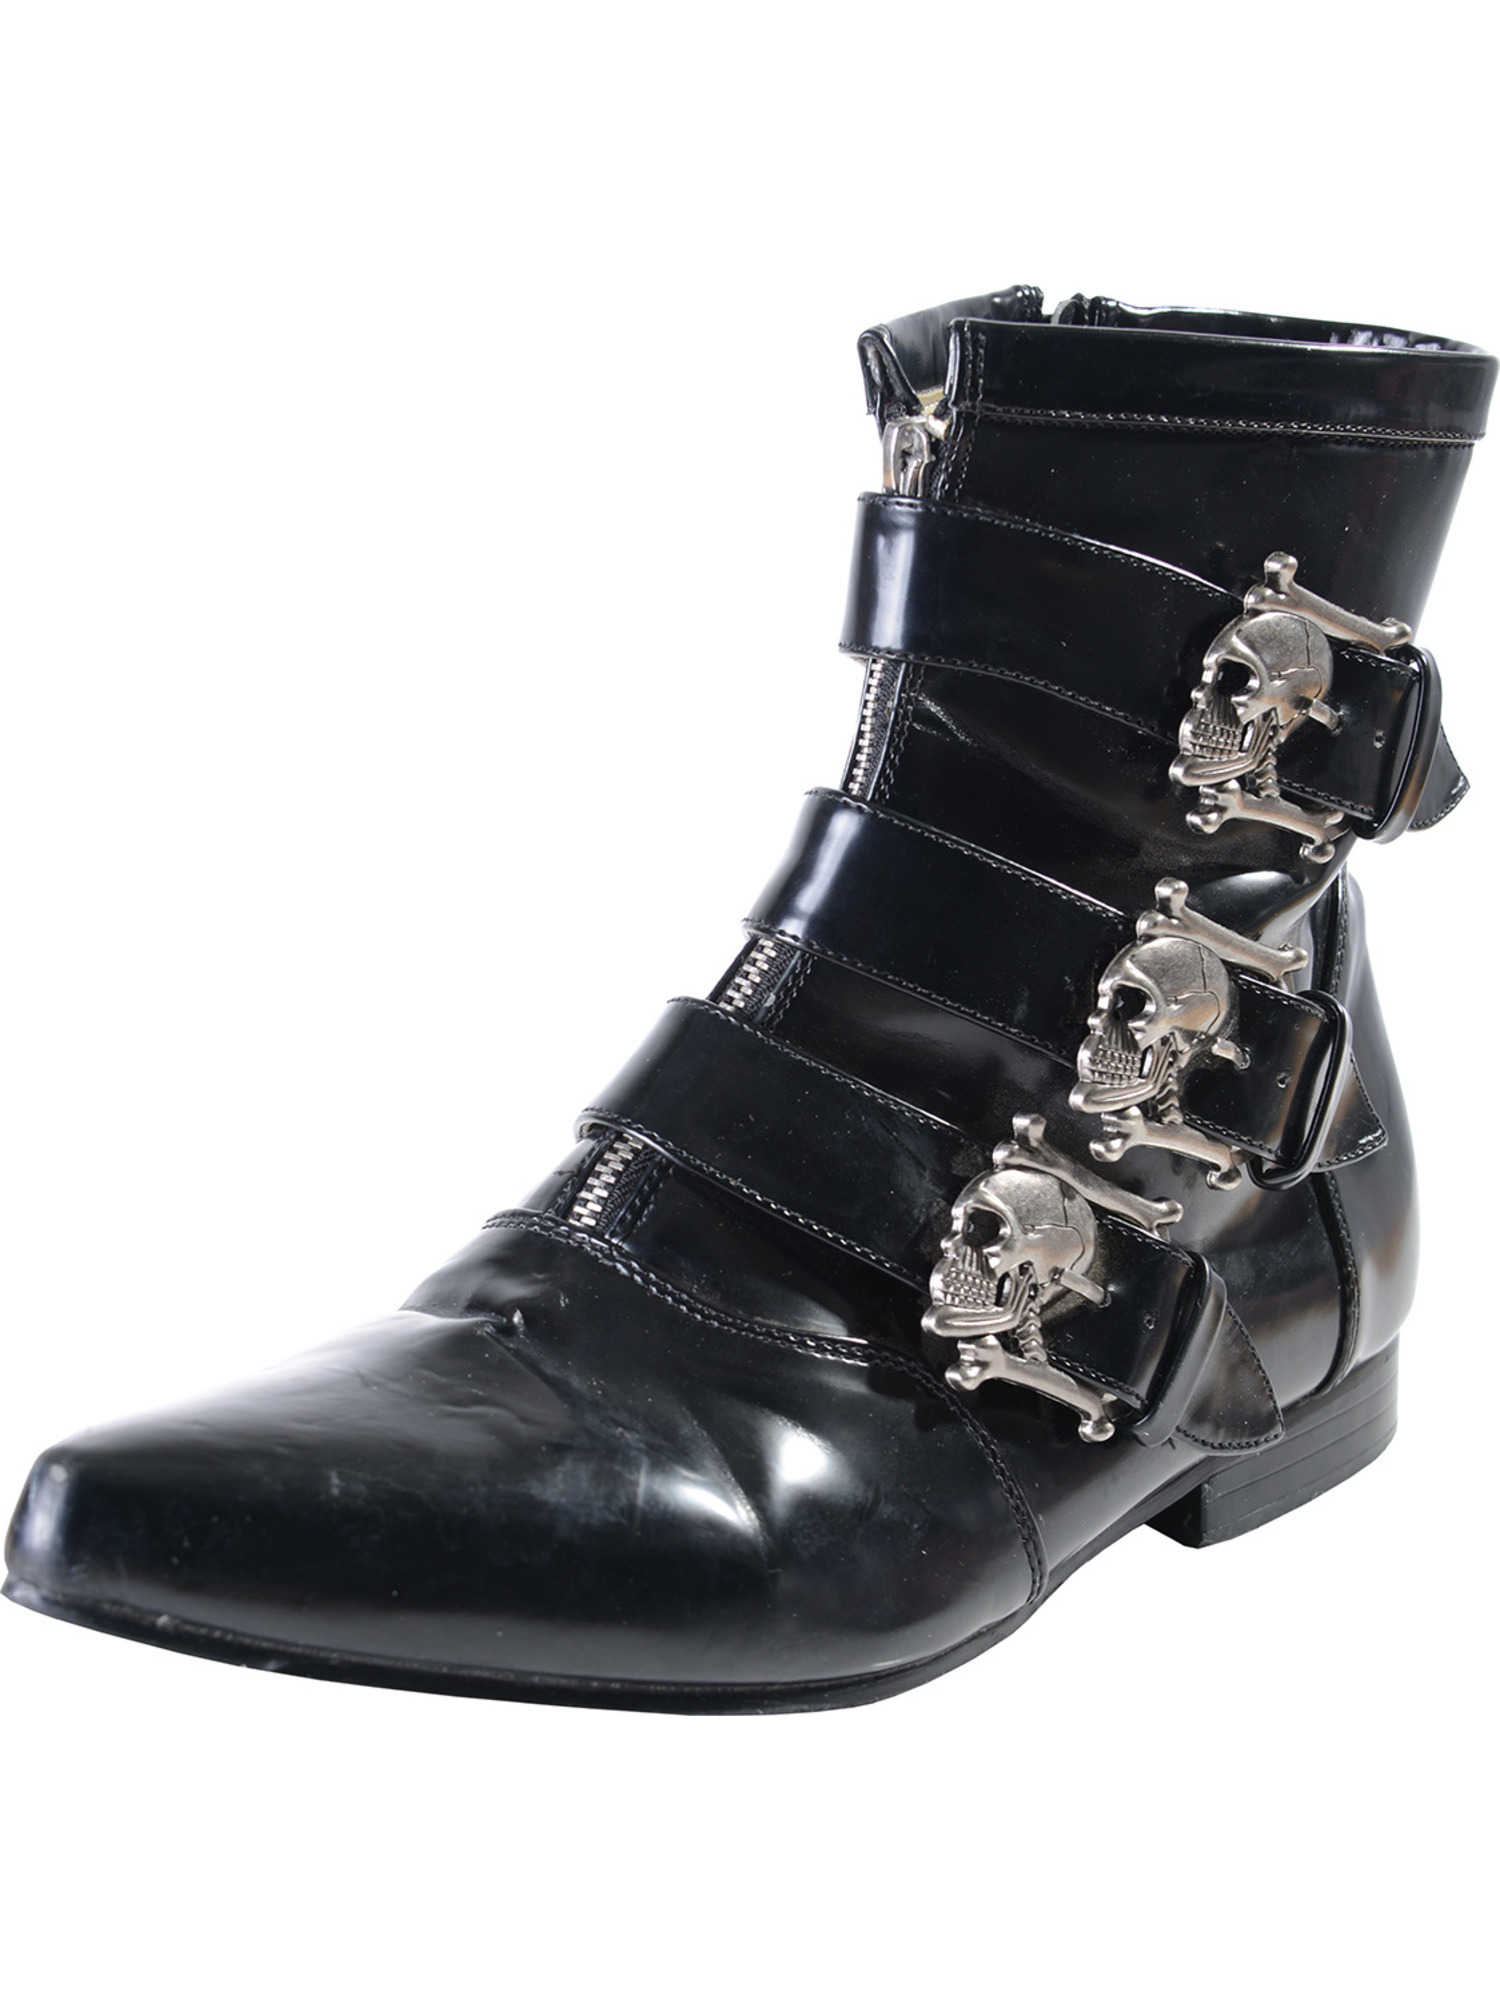 Mens Ankle Boot Skull Buckles GOTH style Black